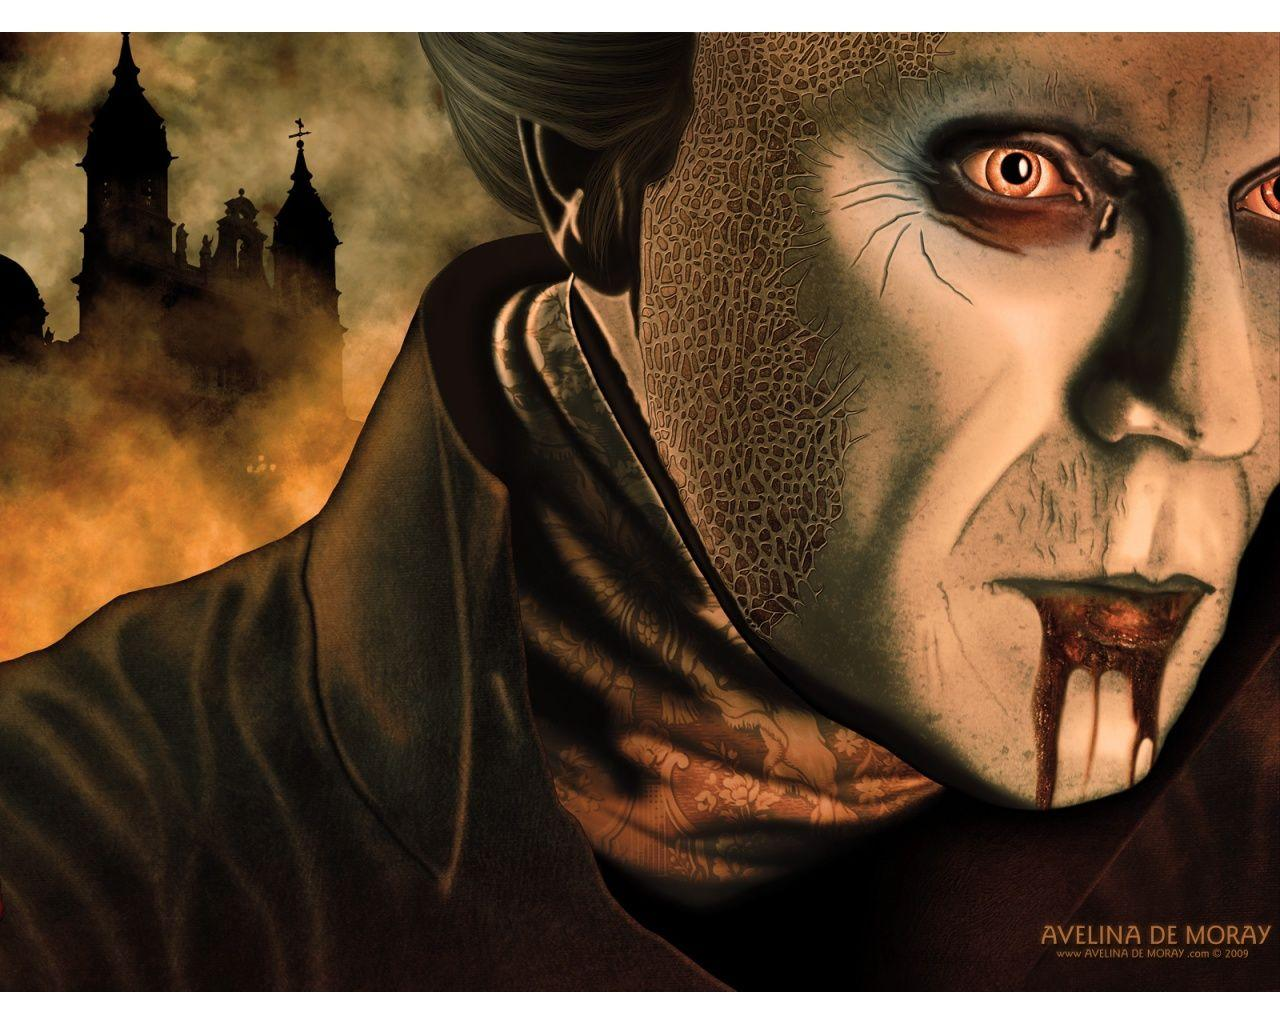 dracula hd wallpapers - photo #34